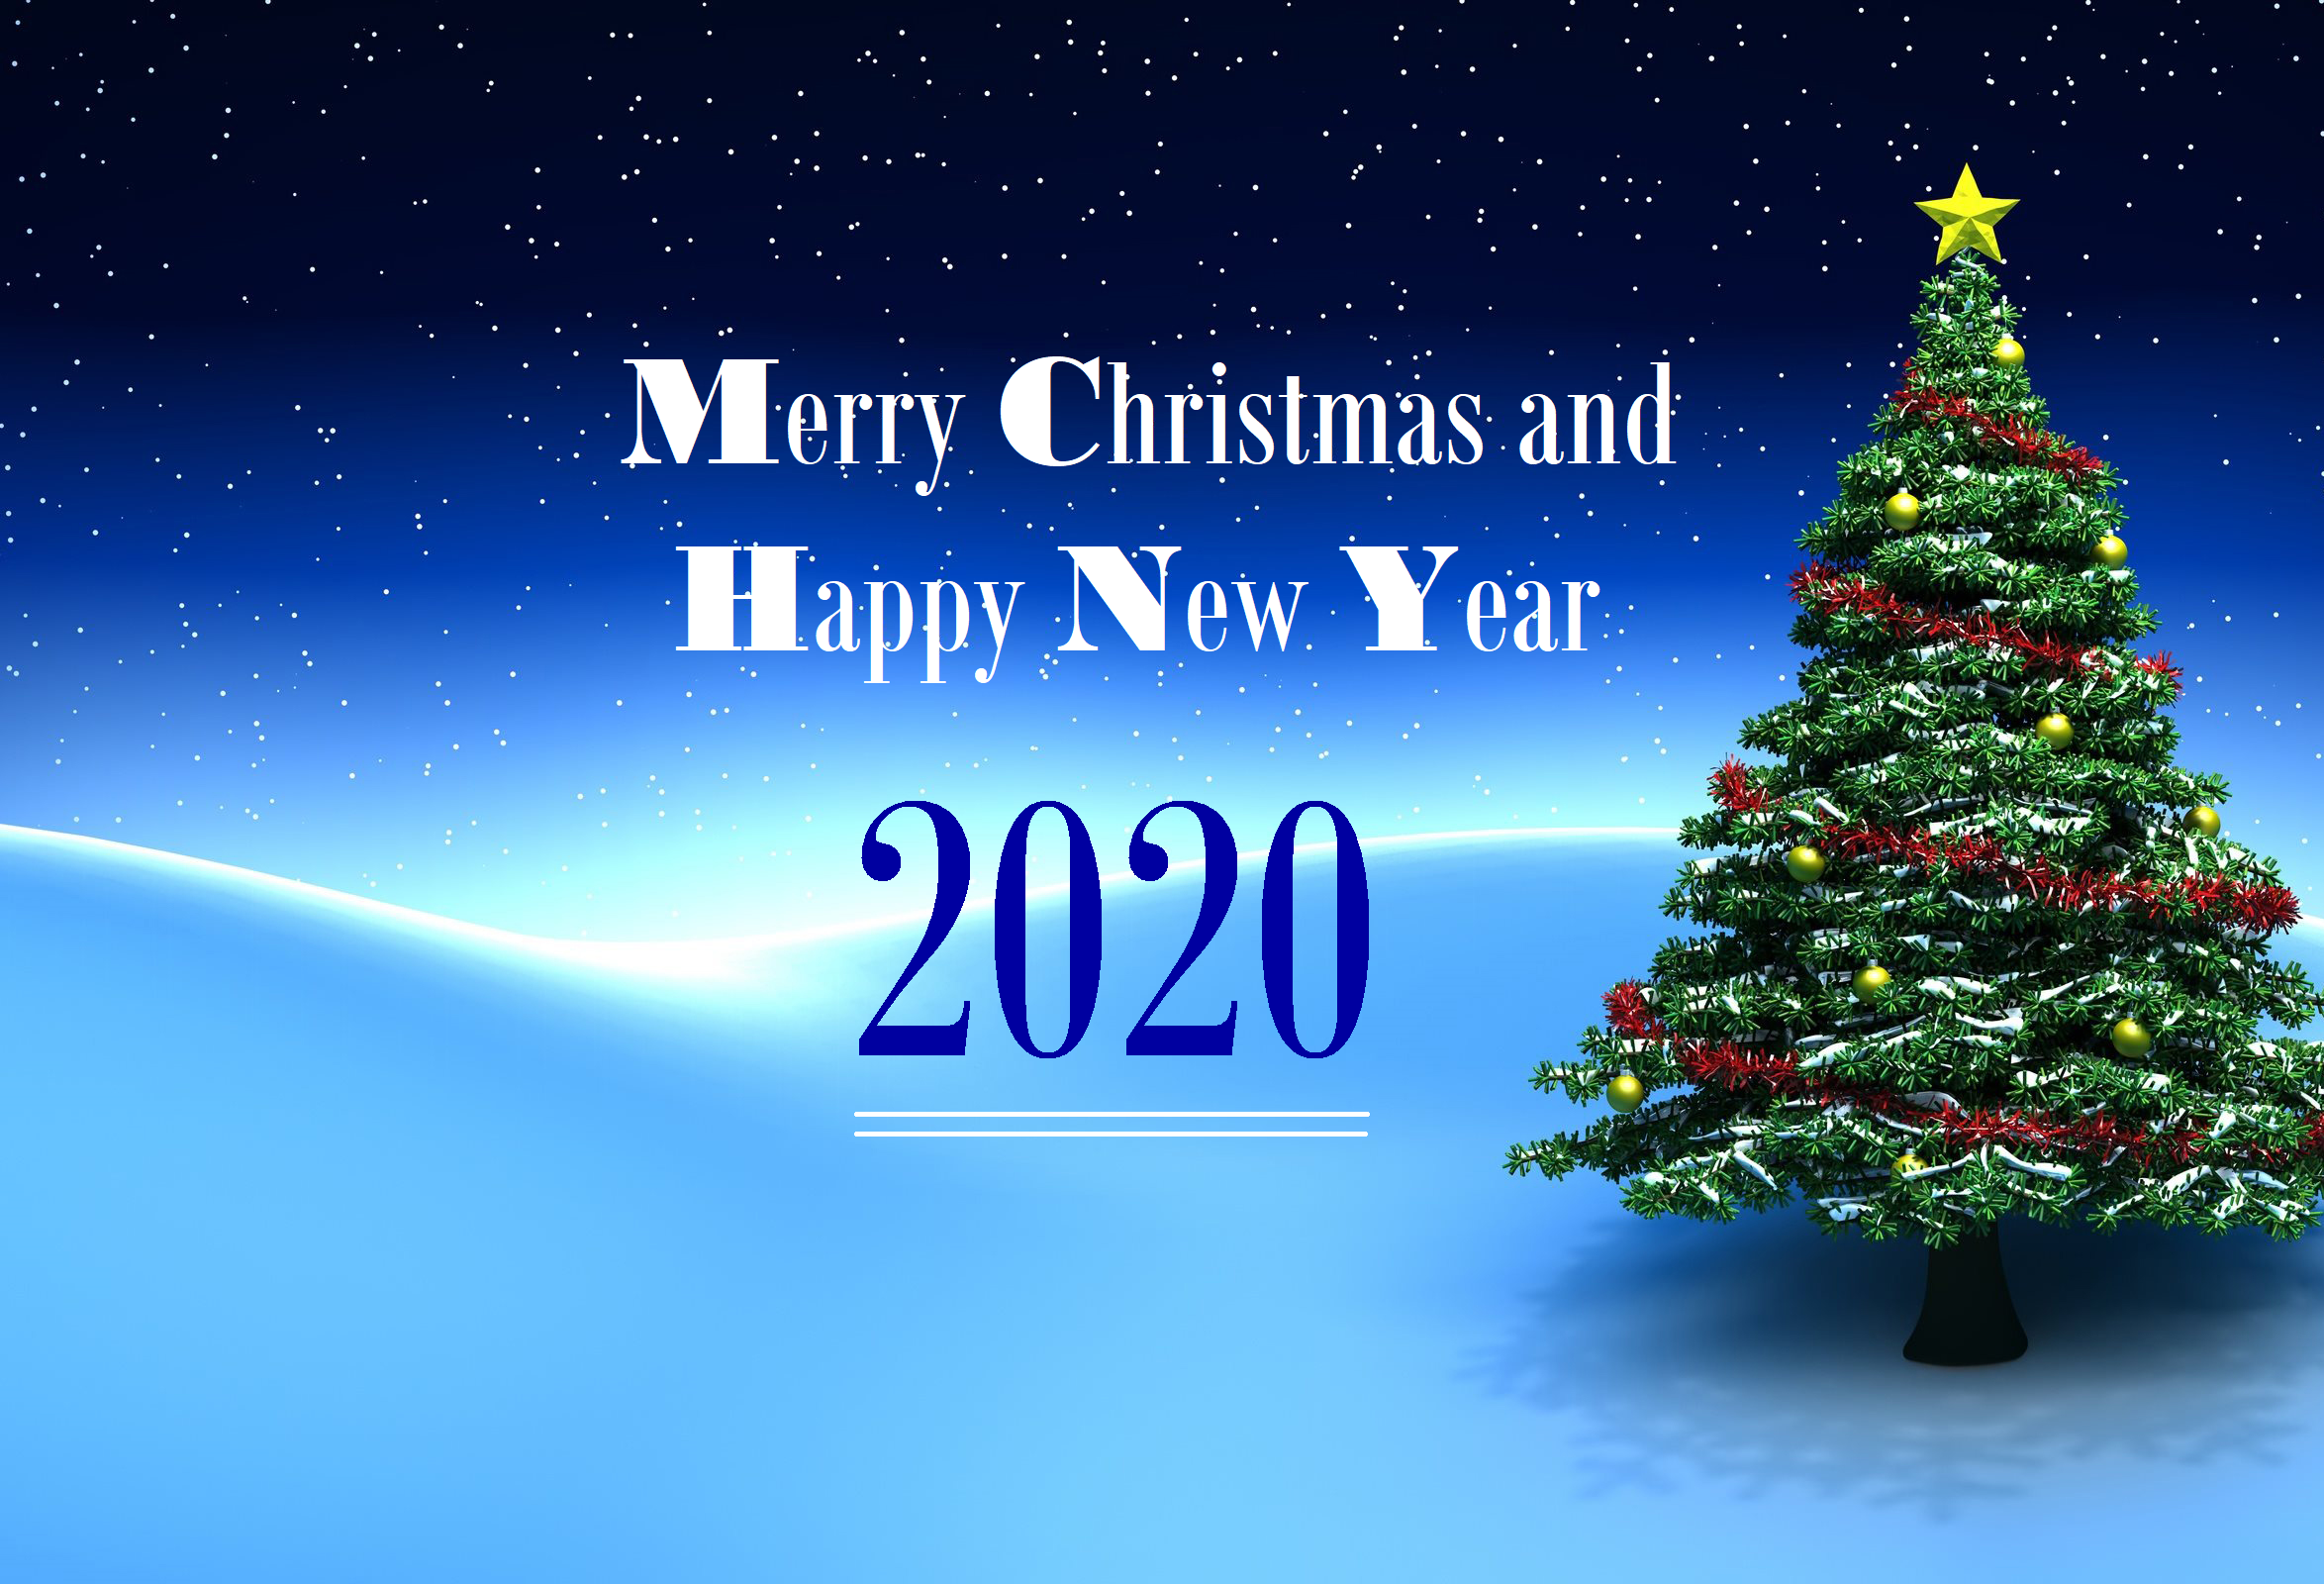 Christmas Images Hd 2020 Free download 30] Merry Christmas 2020 Hd Wallpapers on